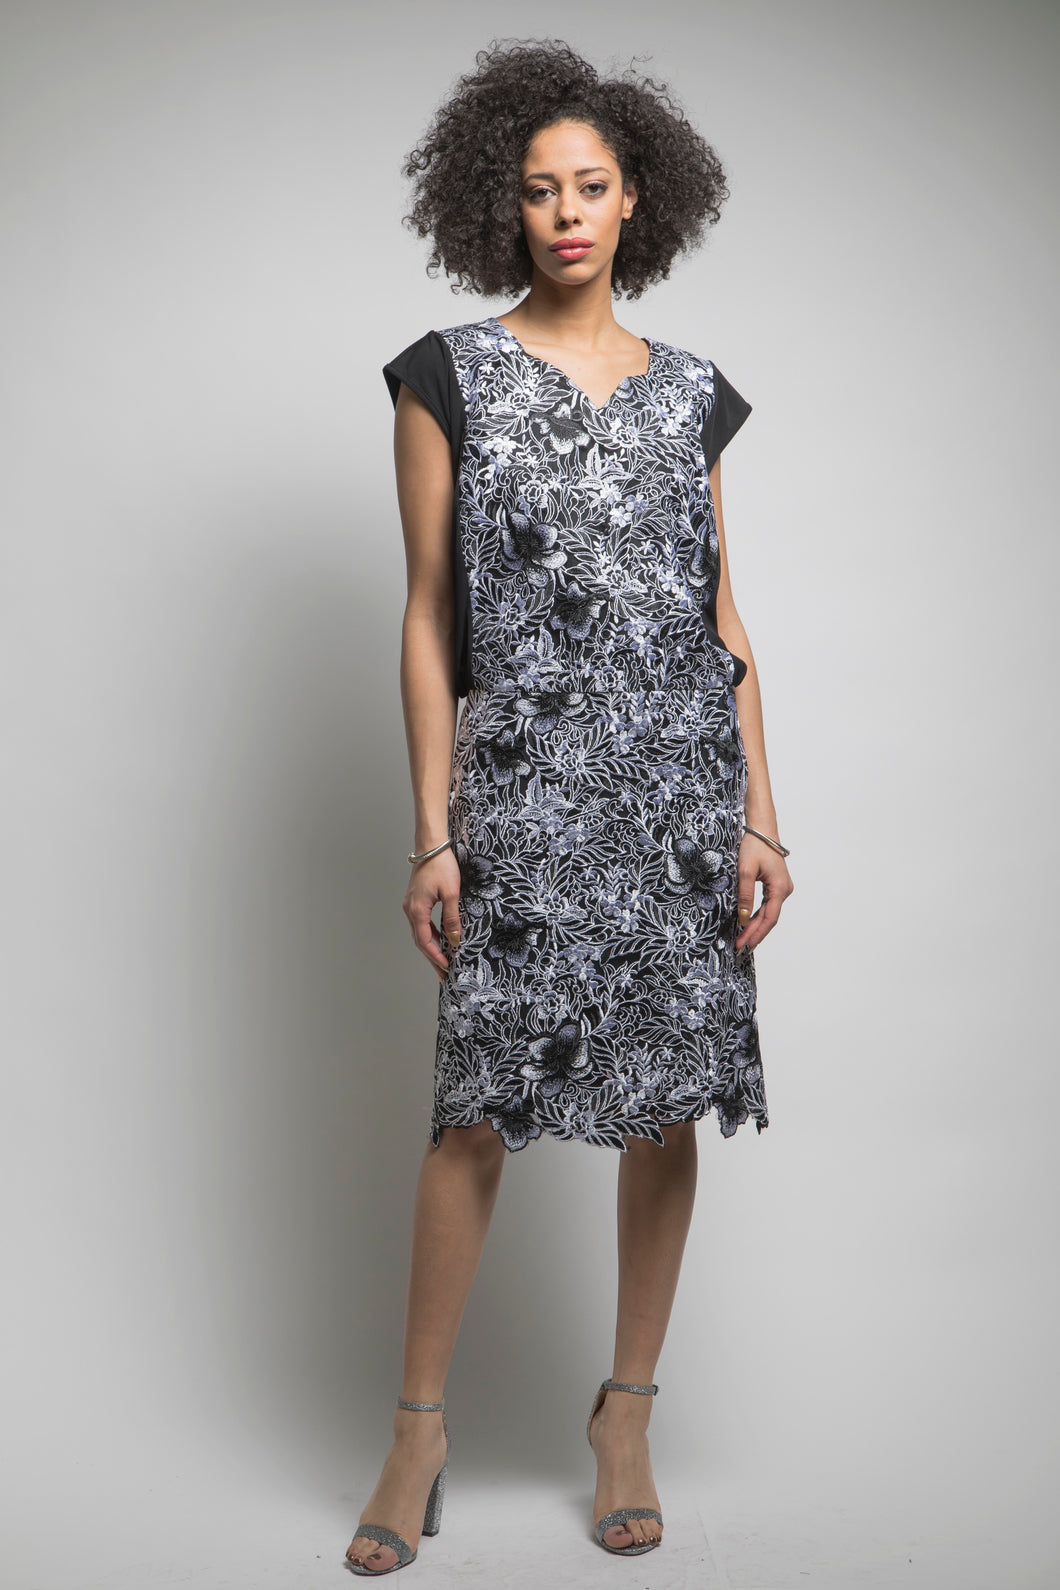 Made in NYC: Lace Panel Dress Style #155